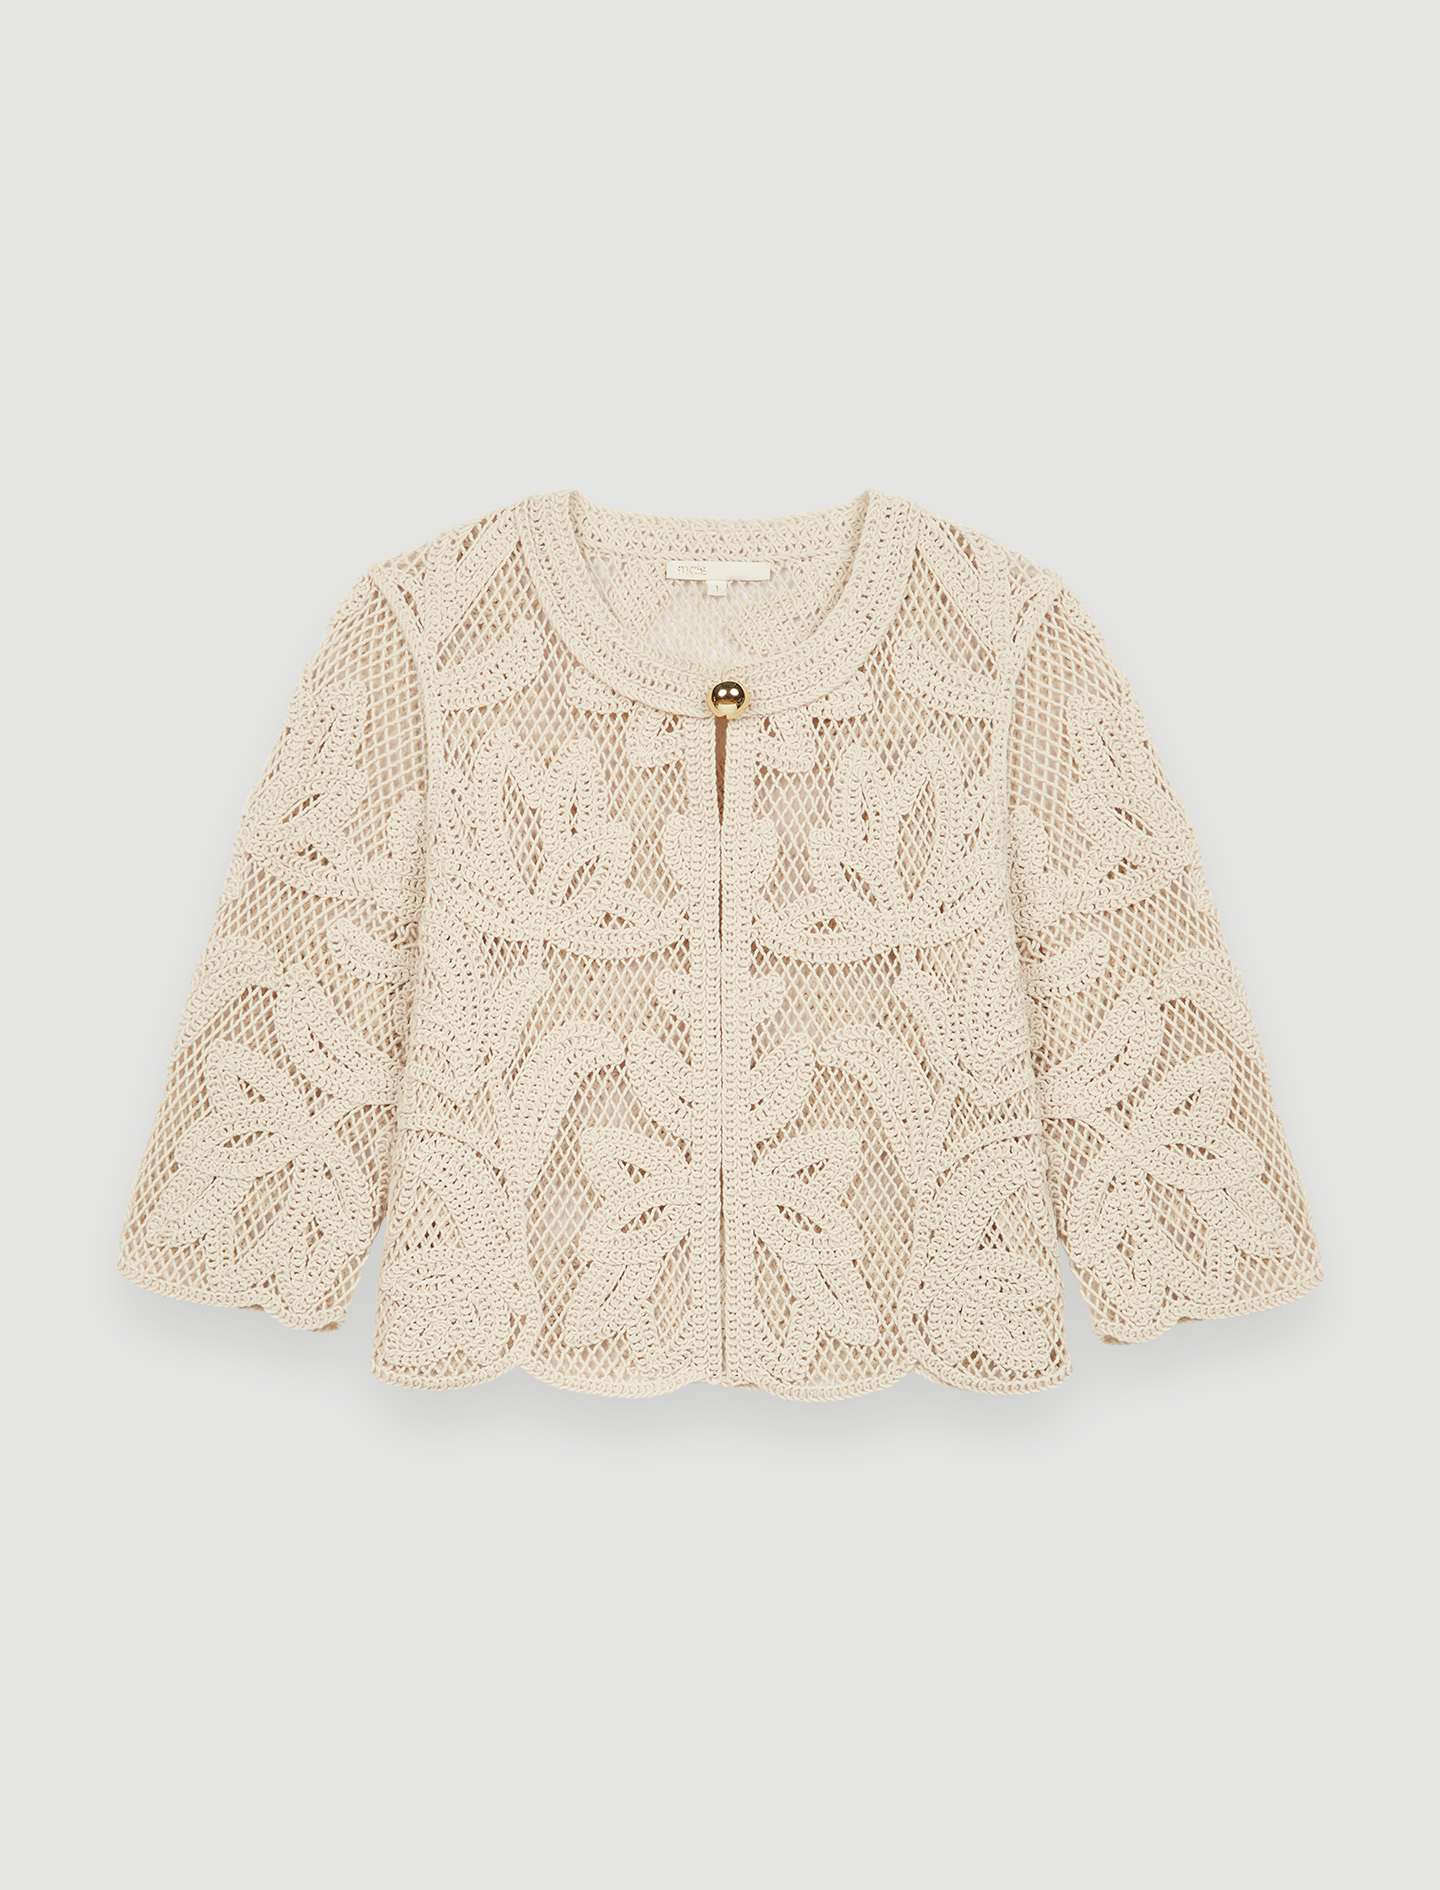 Beige crochet top with short sleeves by Maje Paris